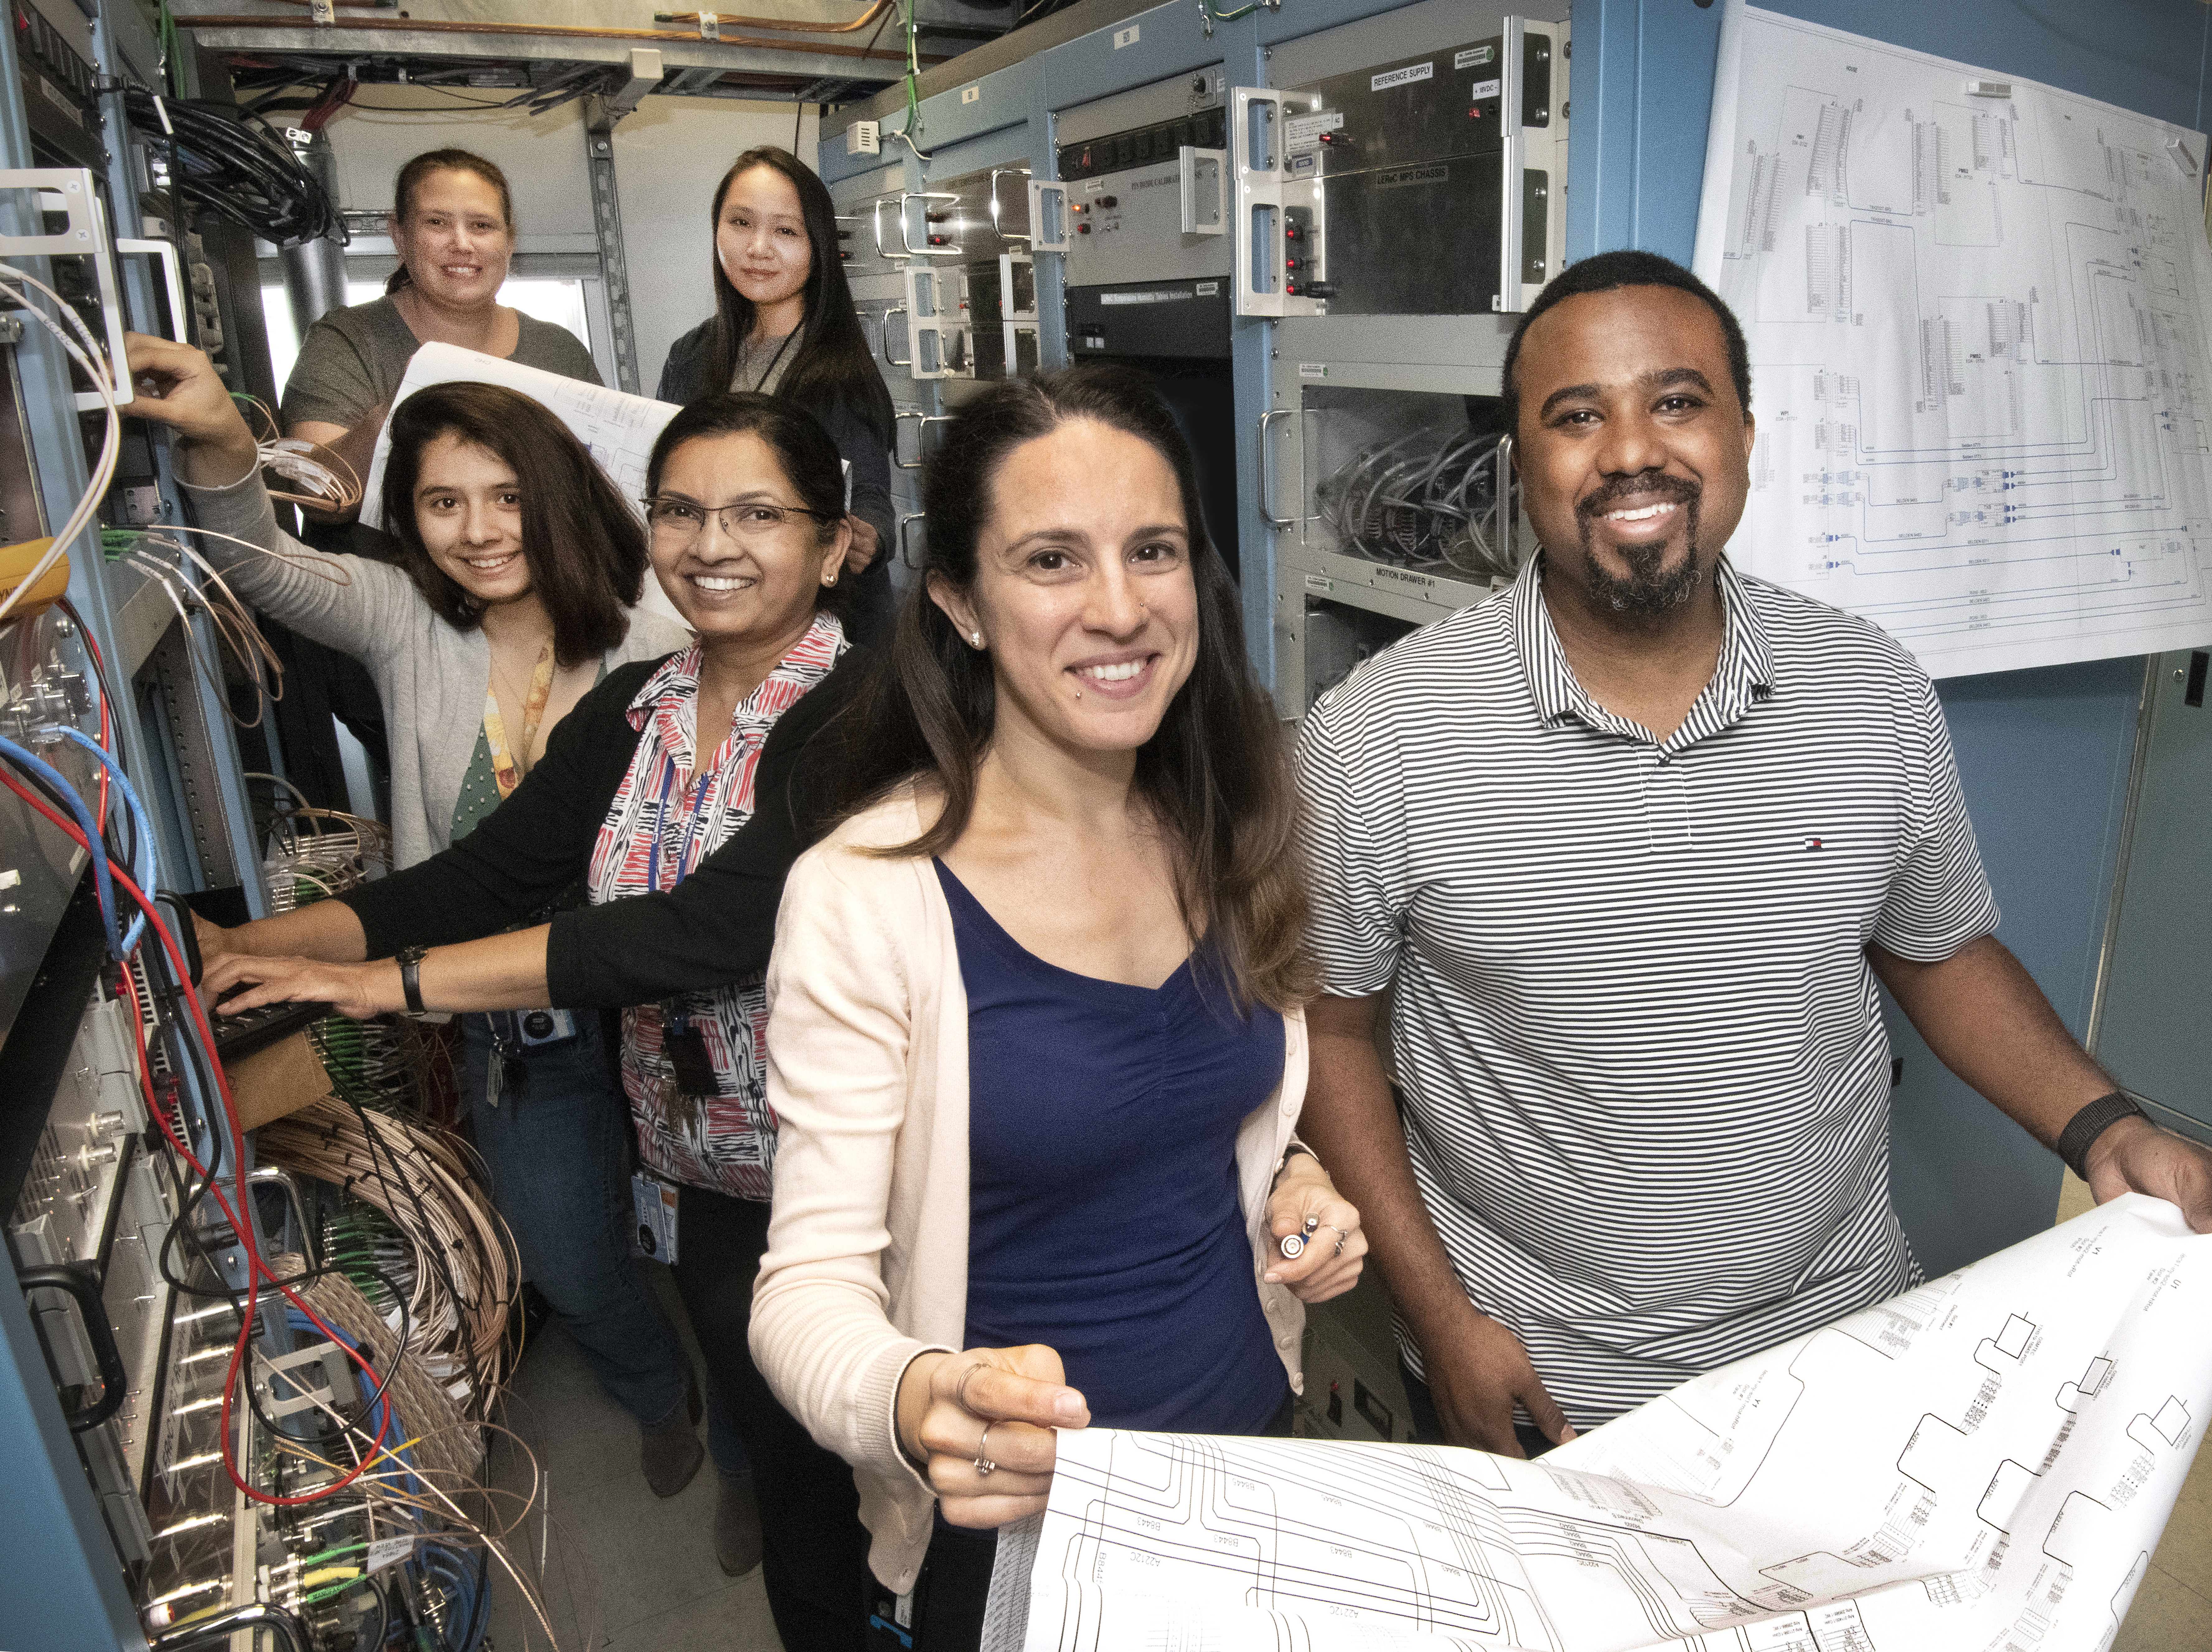 Collider-Accelerator Department engineers and technicians with high-tech custom electronics equipment required for successful beam operations (from rear, l to r): Loralie Smart, Linh Nguyen, Kayla Hernandez, Geetha Narayan, Zeynep Altinbas, Theodoro Samms.